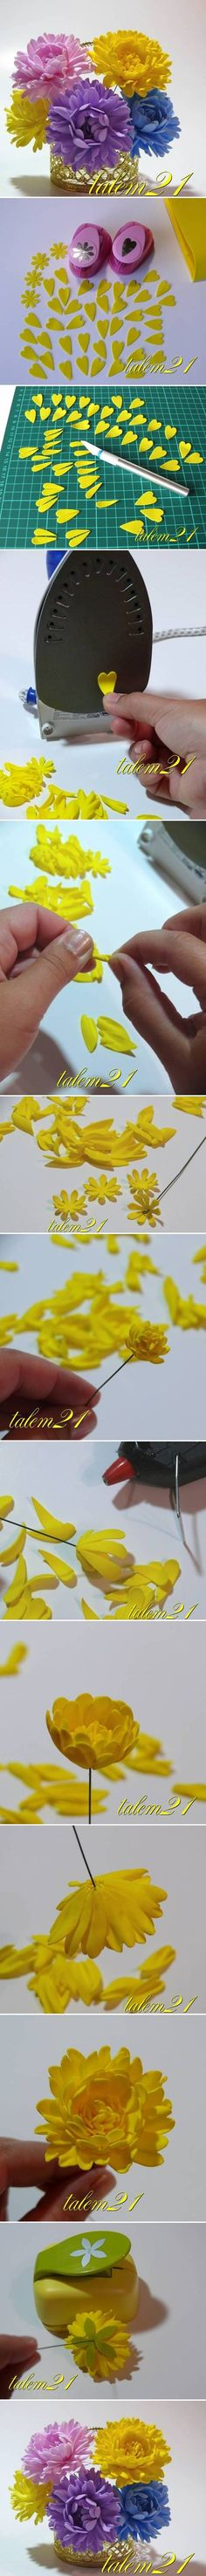 DIY Small Chrysanthemum Flower